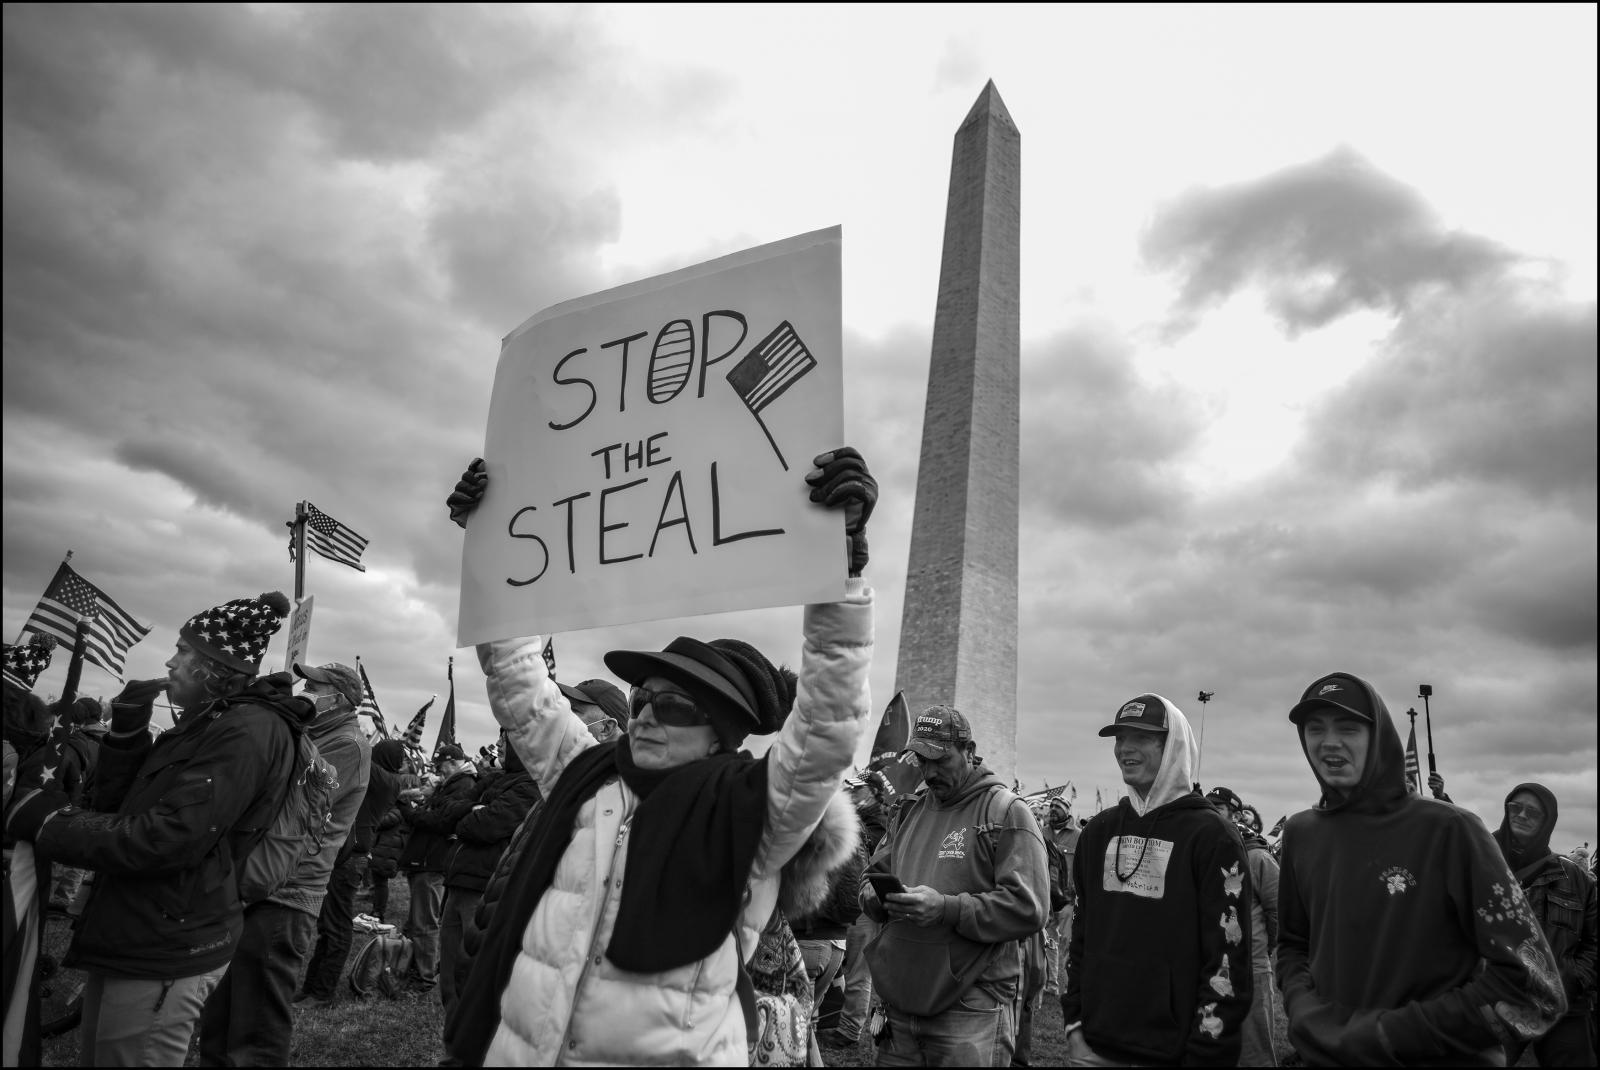 Rally to overturn the November 2020 elections. Washington D.C. 01/06/21.